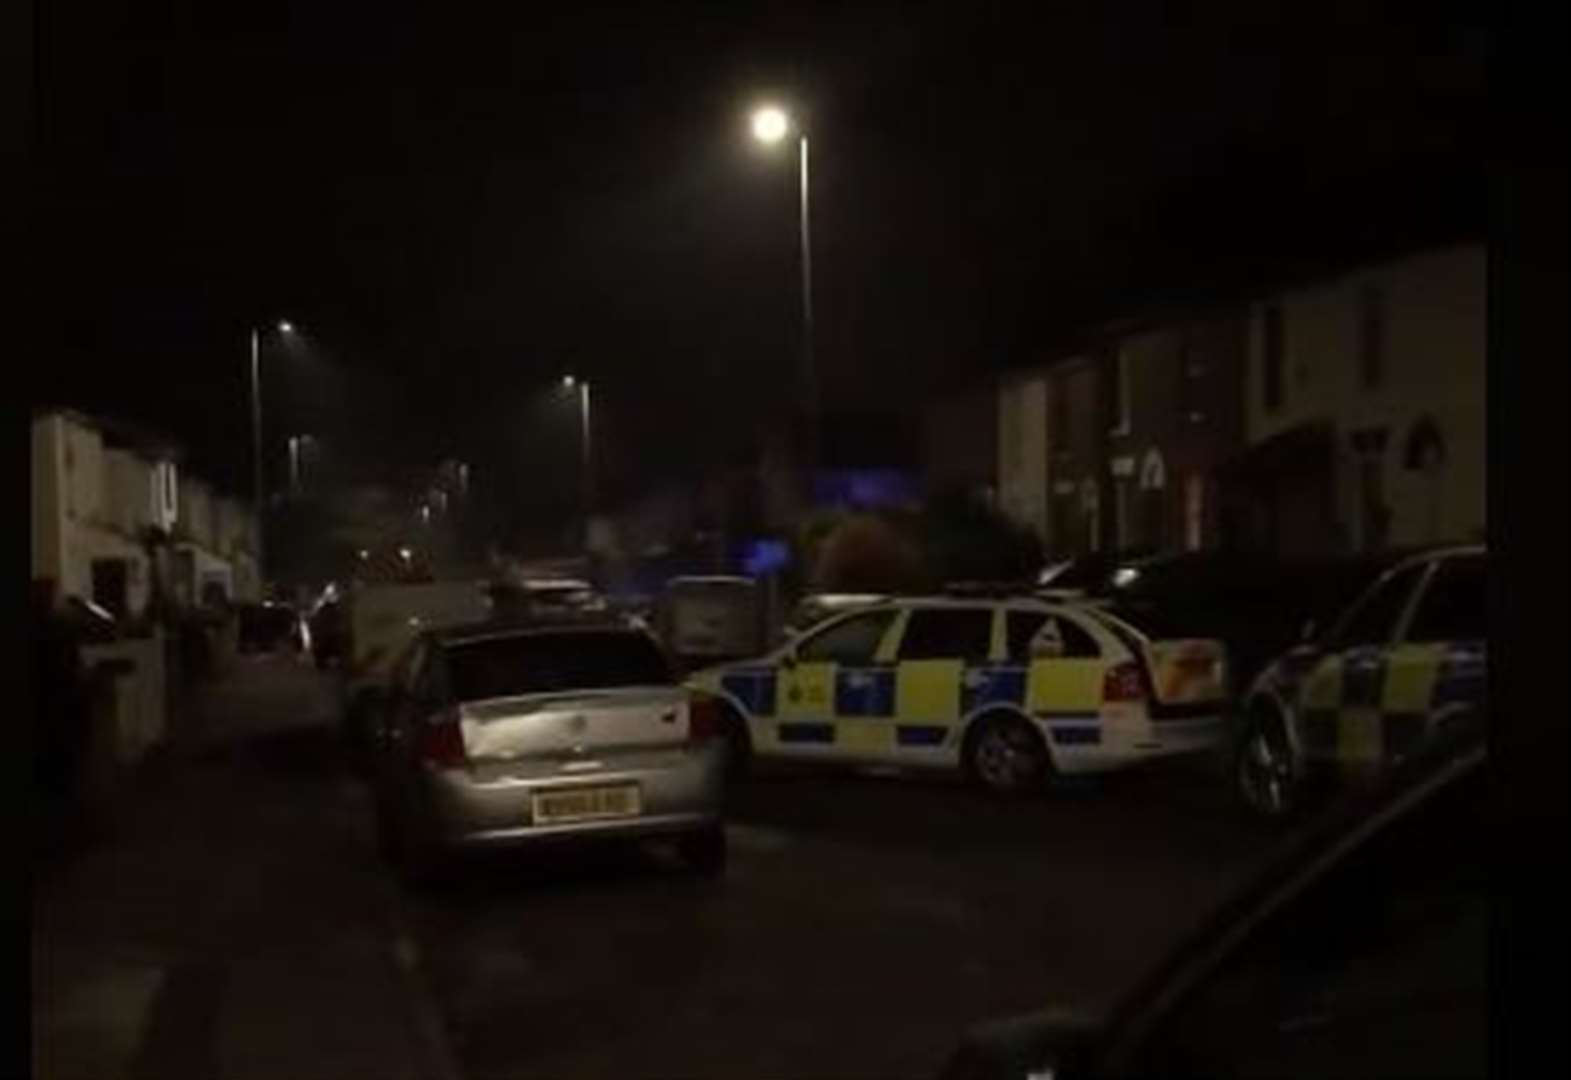 Police helicopter spotted over Station Road, Rainham hunting